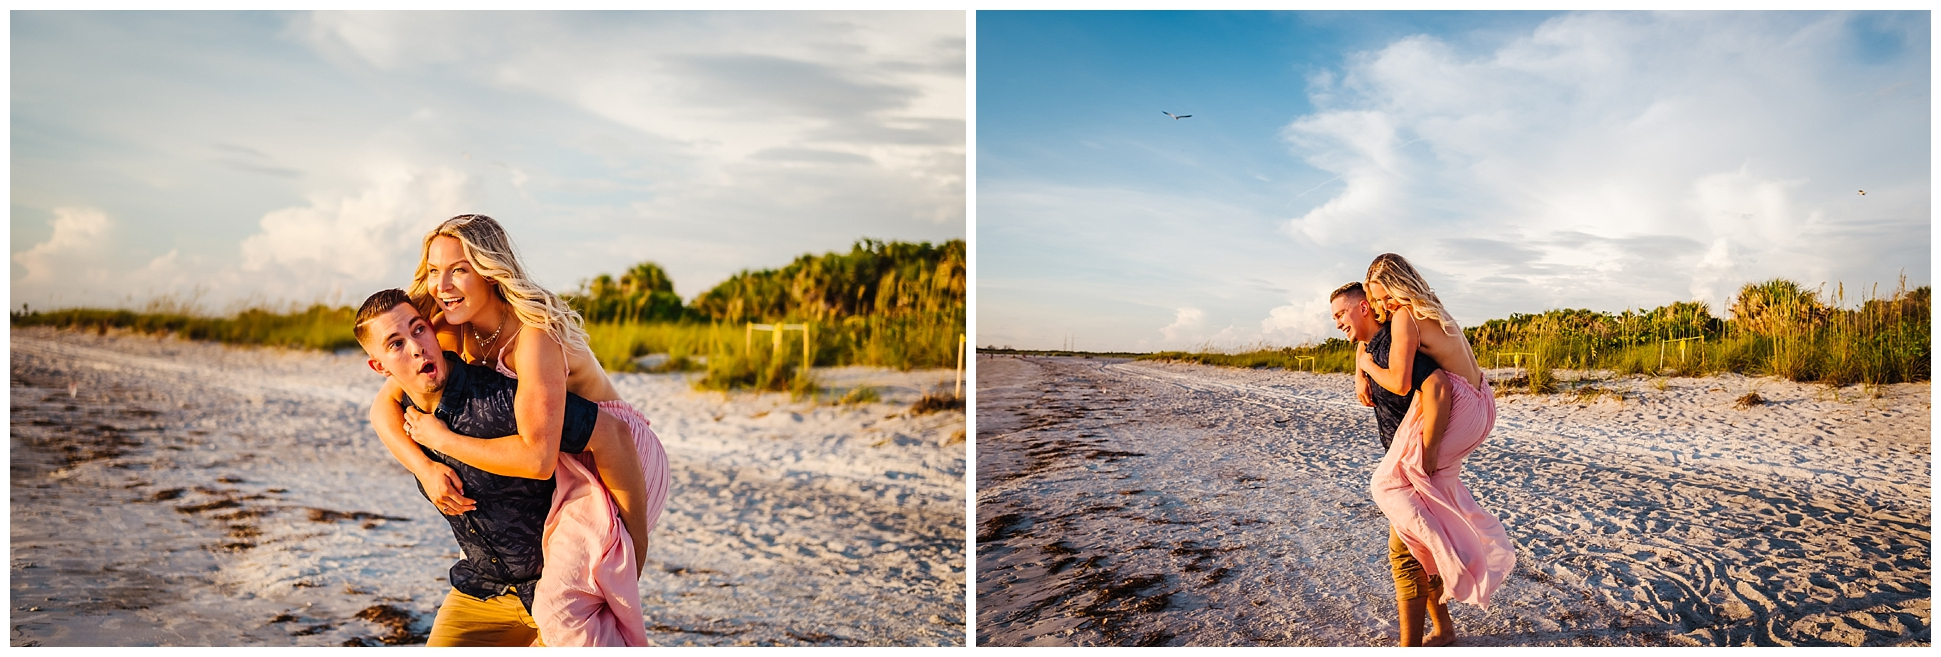 fort-desoto-engagement-photos-florida-beach-sunset_0230.jpg